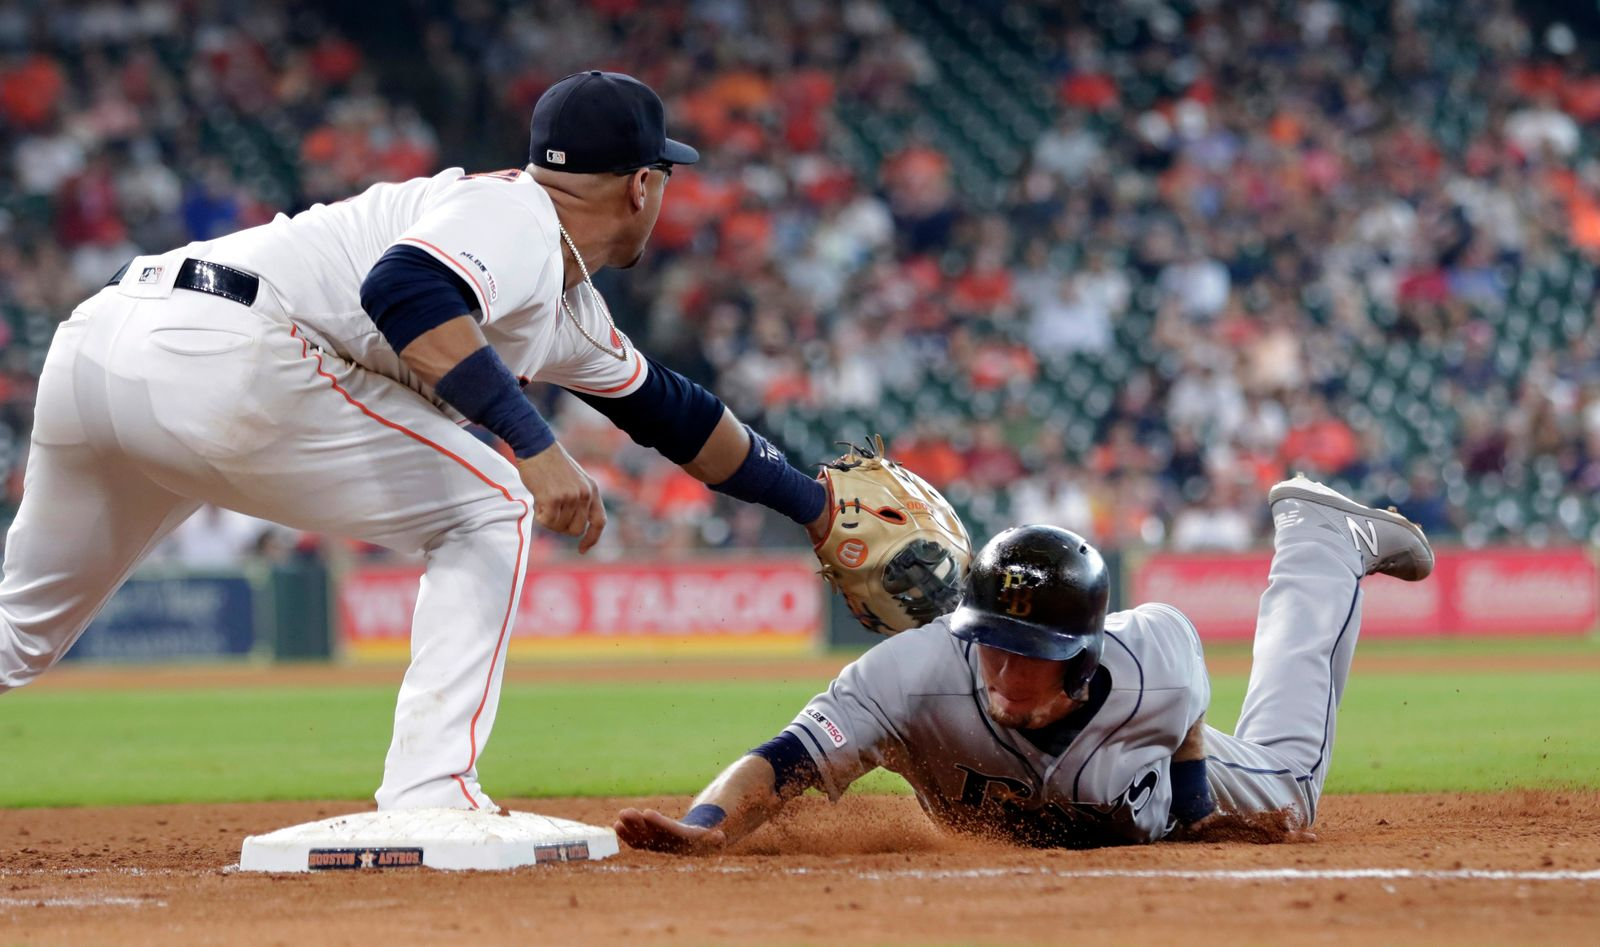 Houston Astros first baseman Yuli Gurriel, left, waits for the throw as Tampa Bay Rays' Matt Duffy, right, dives back to first base during the seventh inning of a baseball game Thursday, Aug. 29, 2019, in Houston. (AP Photo/Michael Wyke)